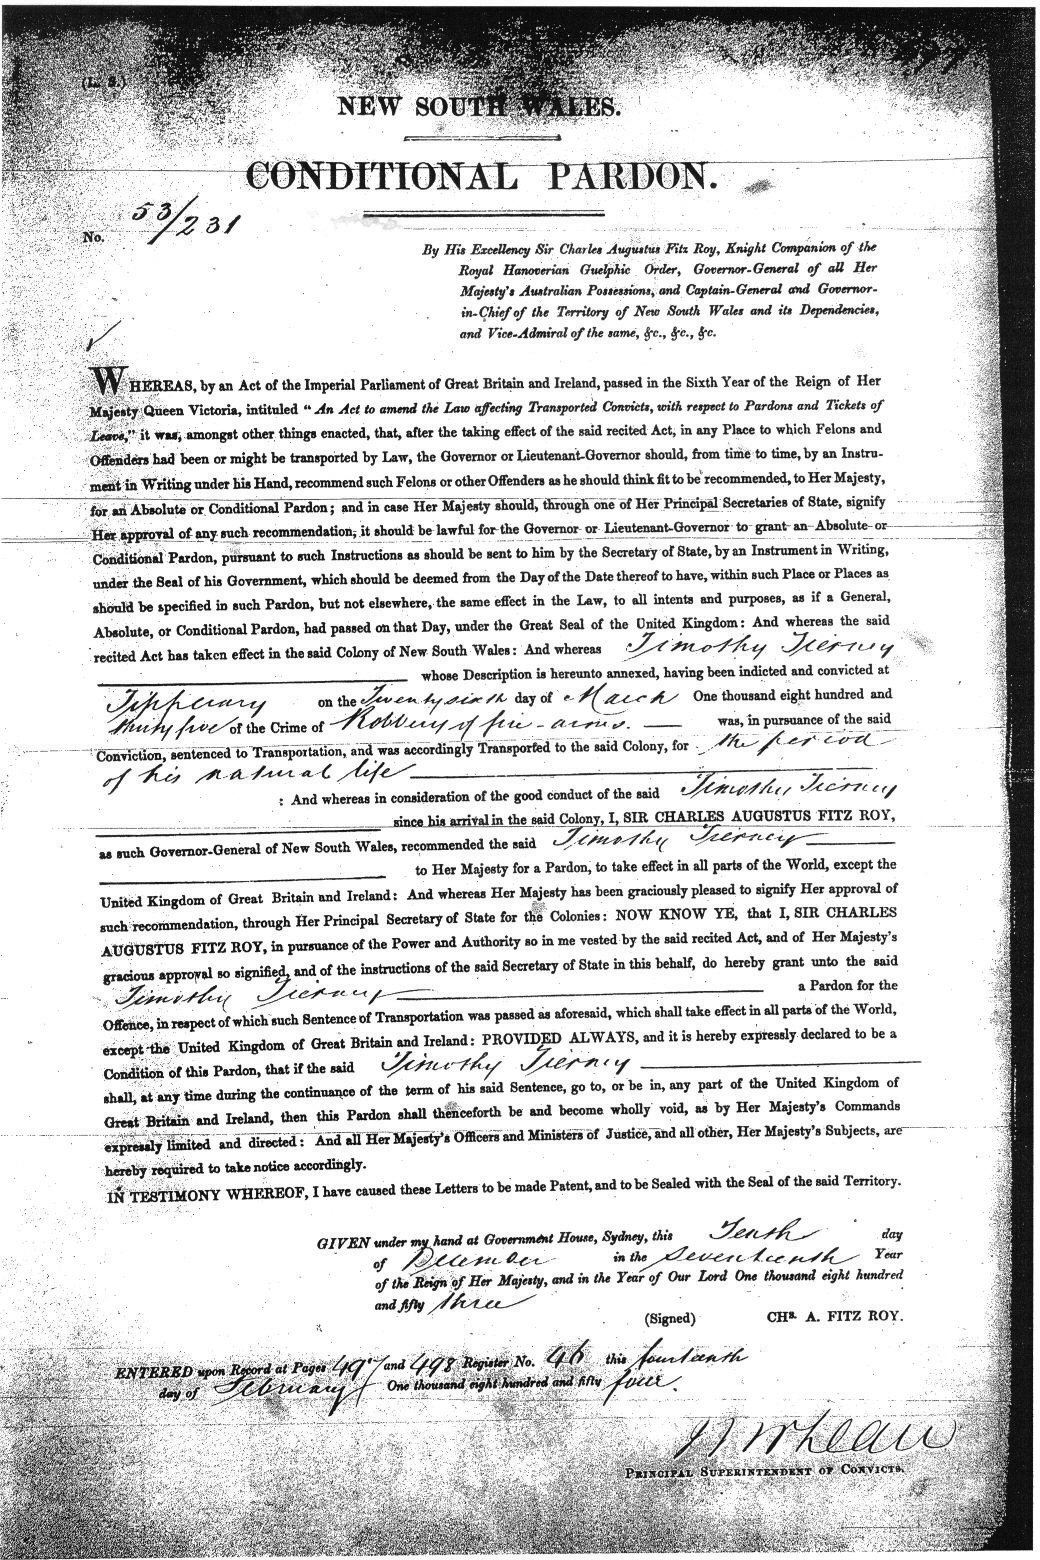 Pardon of Timothy Tierney in New South Wales